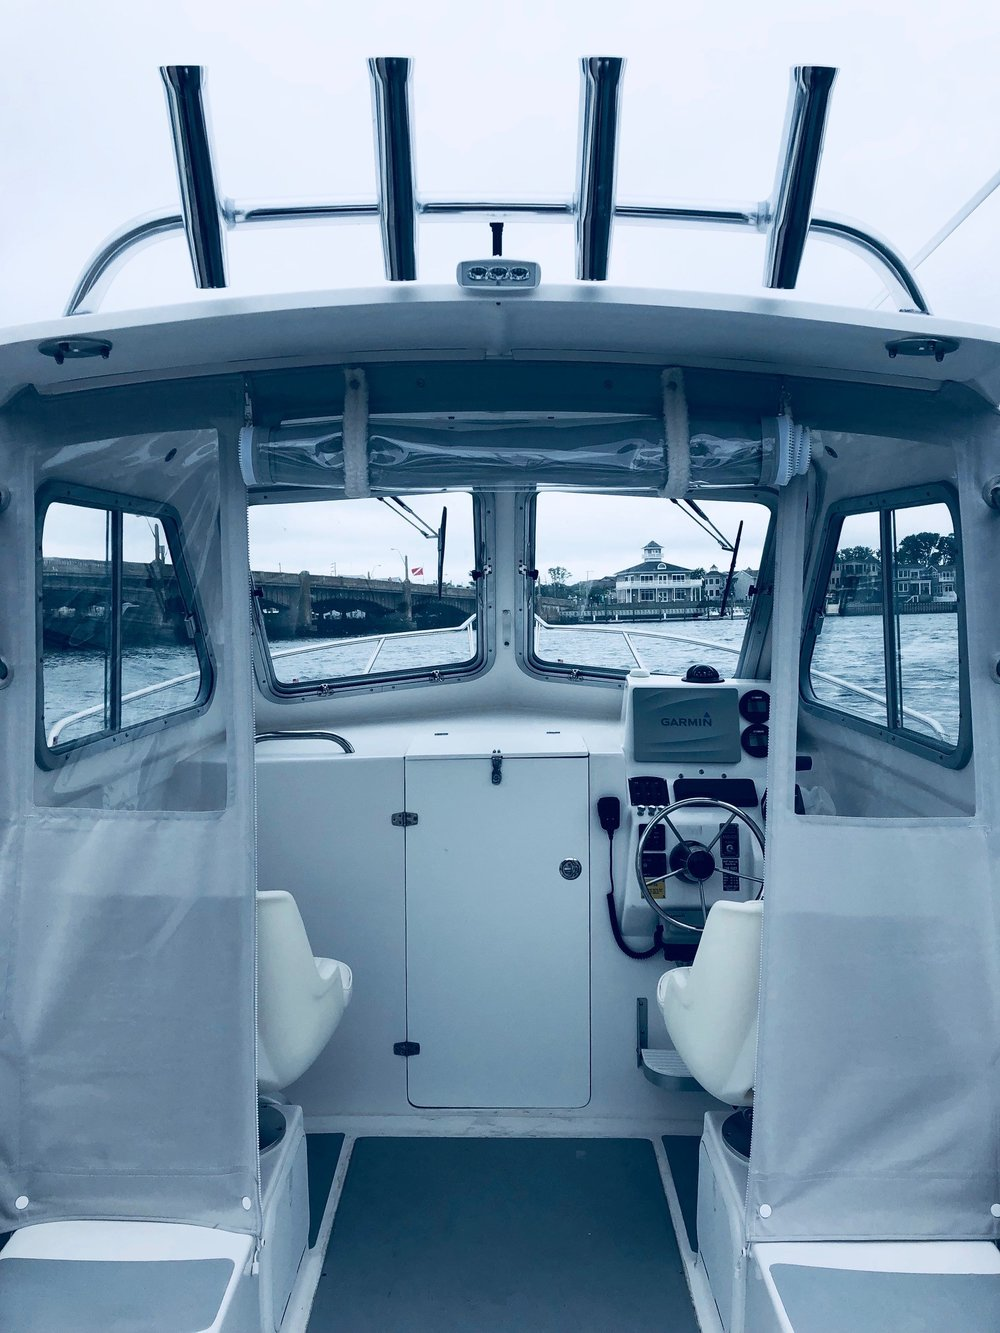 215 PILOTHOUSE VIEW.jpg